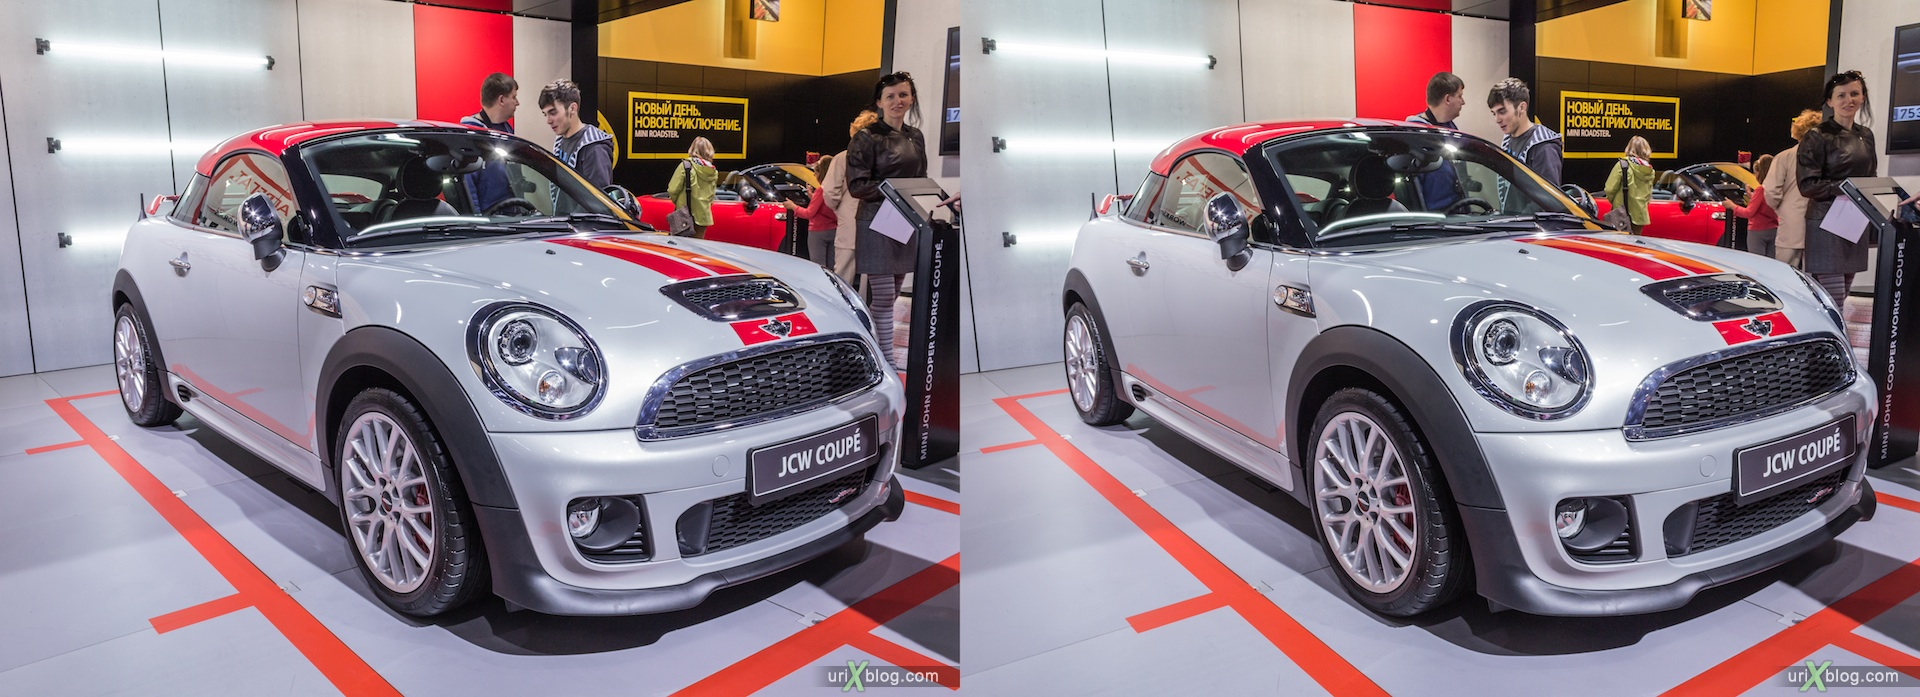 2012, JCW Coupe, Moscow International Automobile Salon, auto show, 3D, stereo pair, cross-eyed, crossview